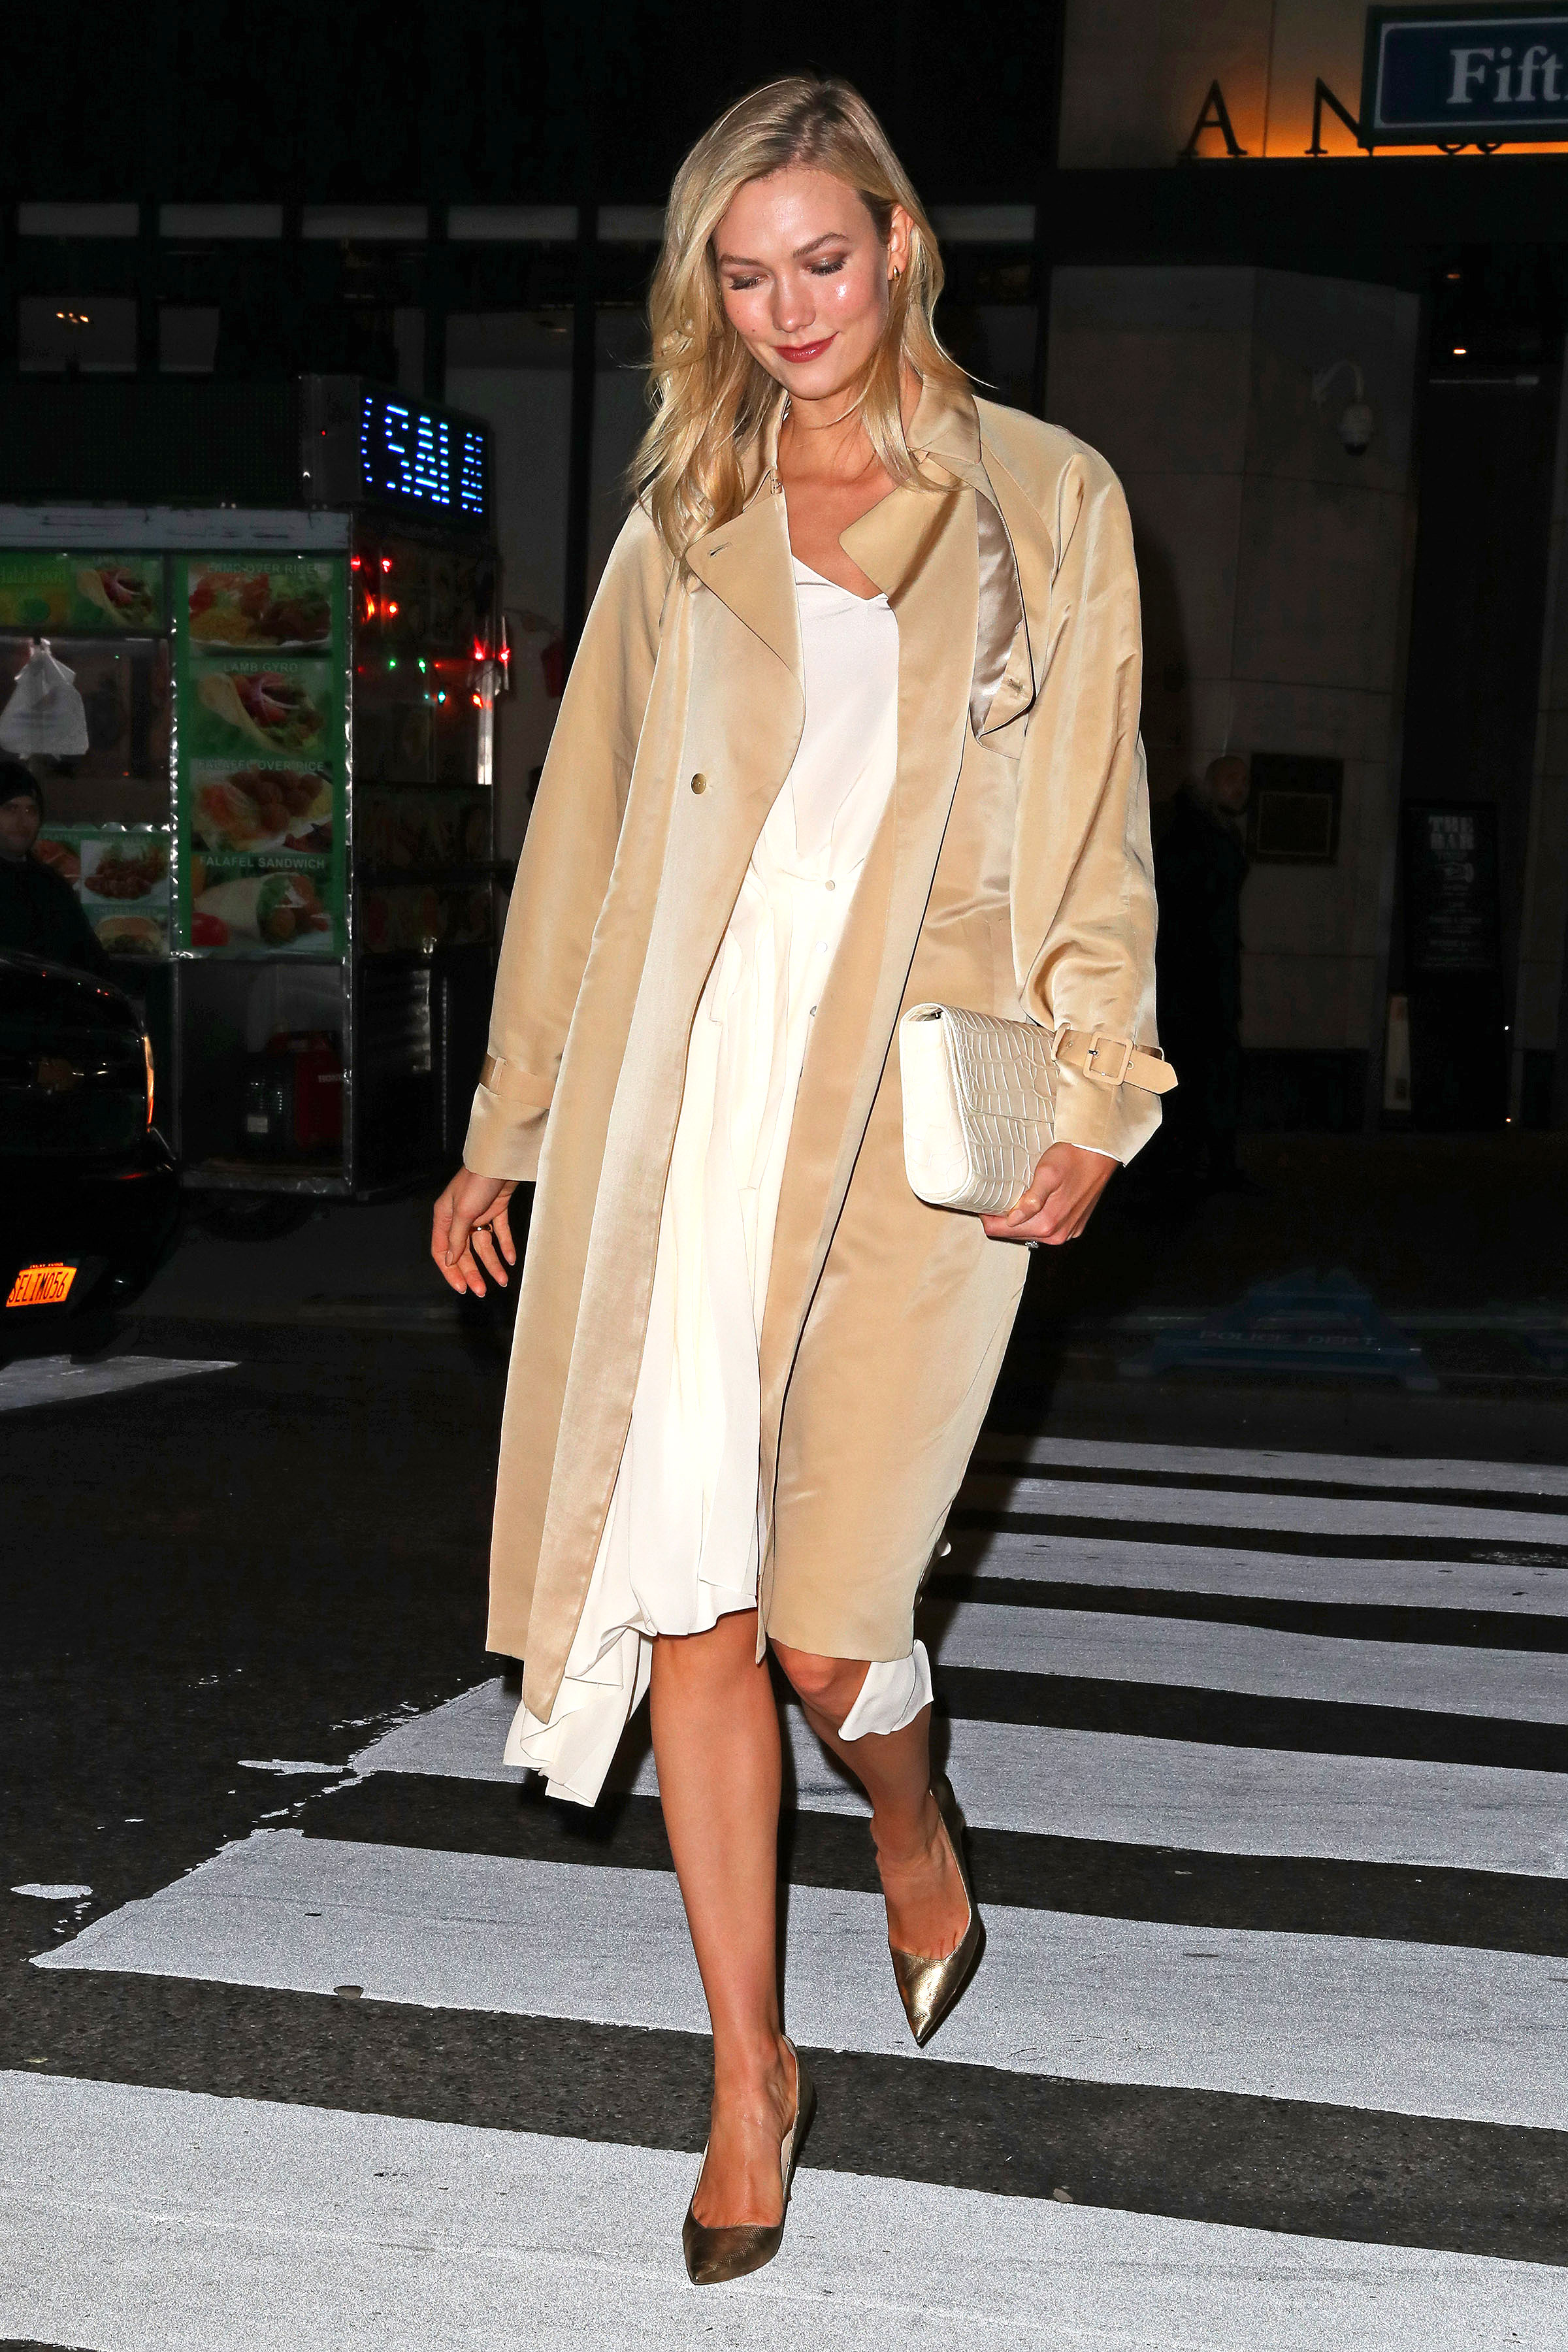 karlie-kloss-beige-coat - Leaving a dinner in NYC on Monday, December 10, the newlywed stunned in a drapey white dress and matching coat.